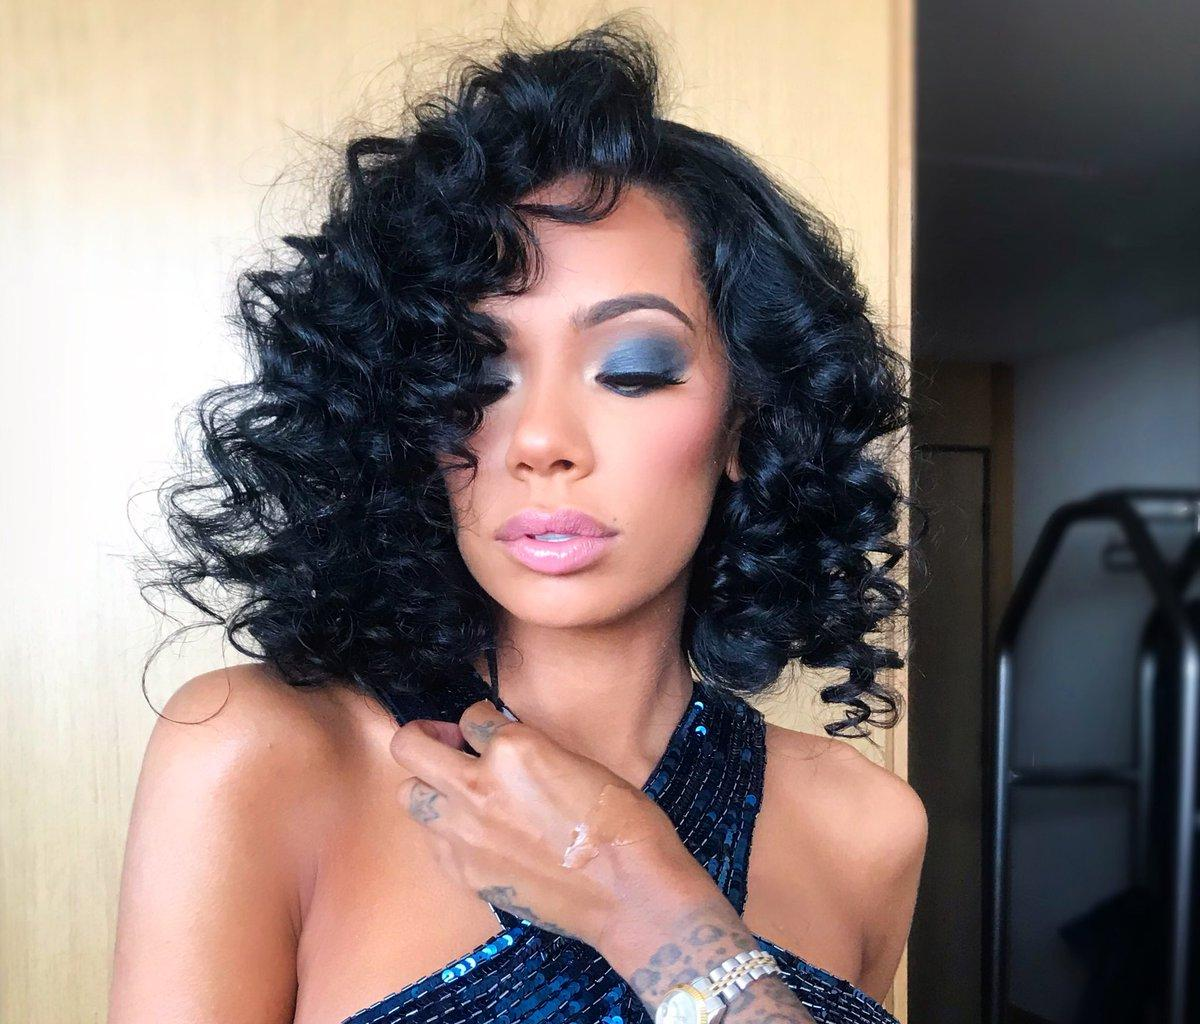 Erica Mena Flaunts A Fashion Nova Outfit - See Her Look For Trapping Safaree With A Second Baby!